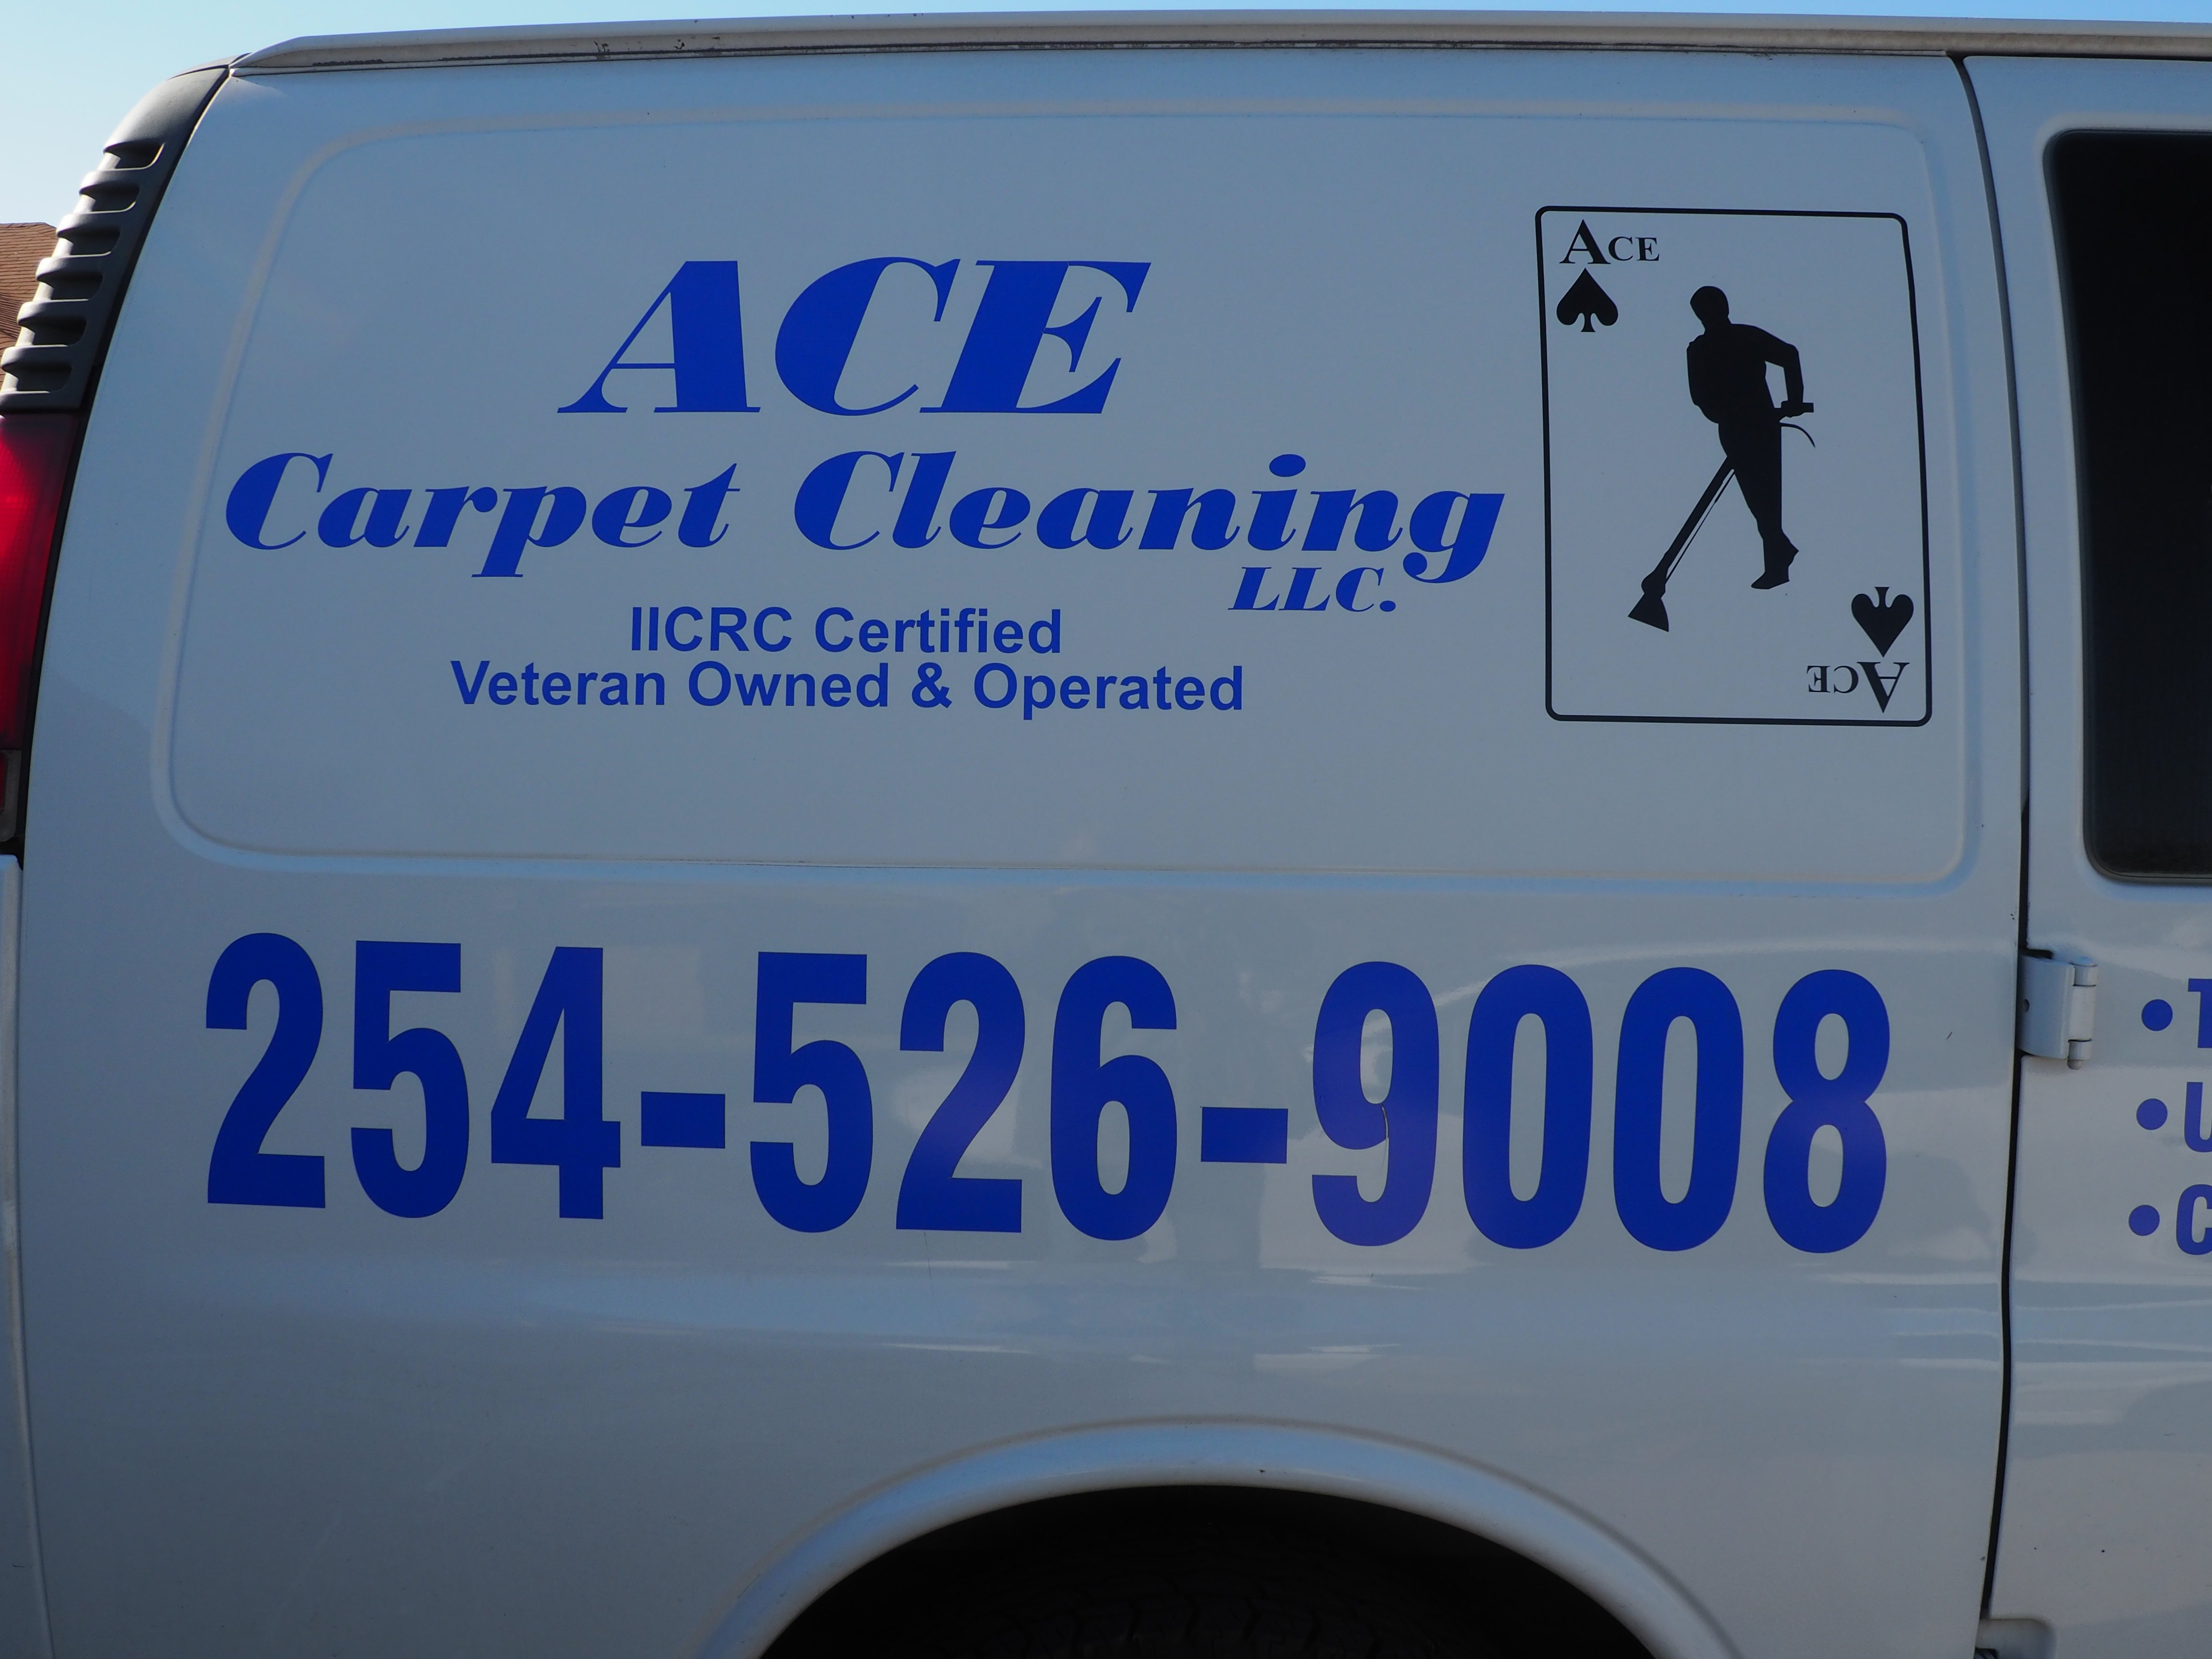 Ace Carpet Cleaning Gallery Image Killeen Texas Fort Hood Van Call Now